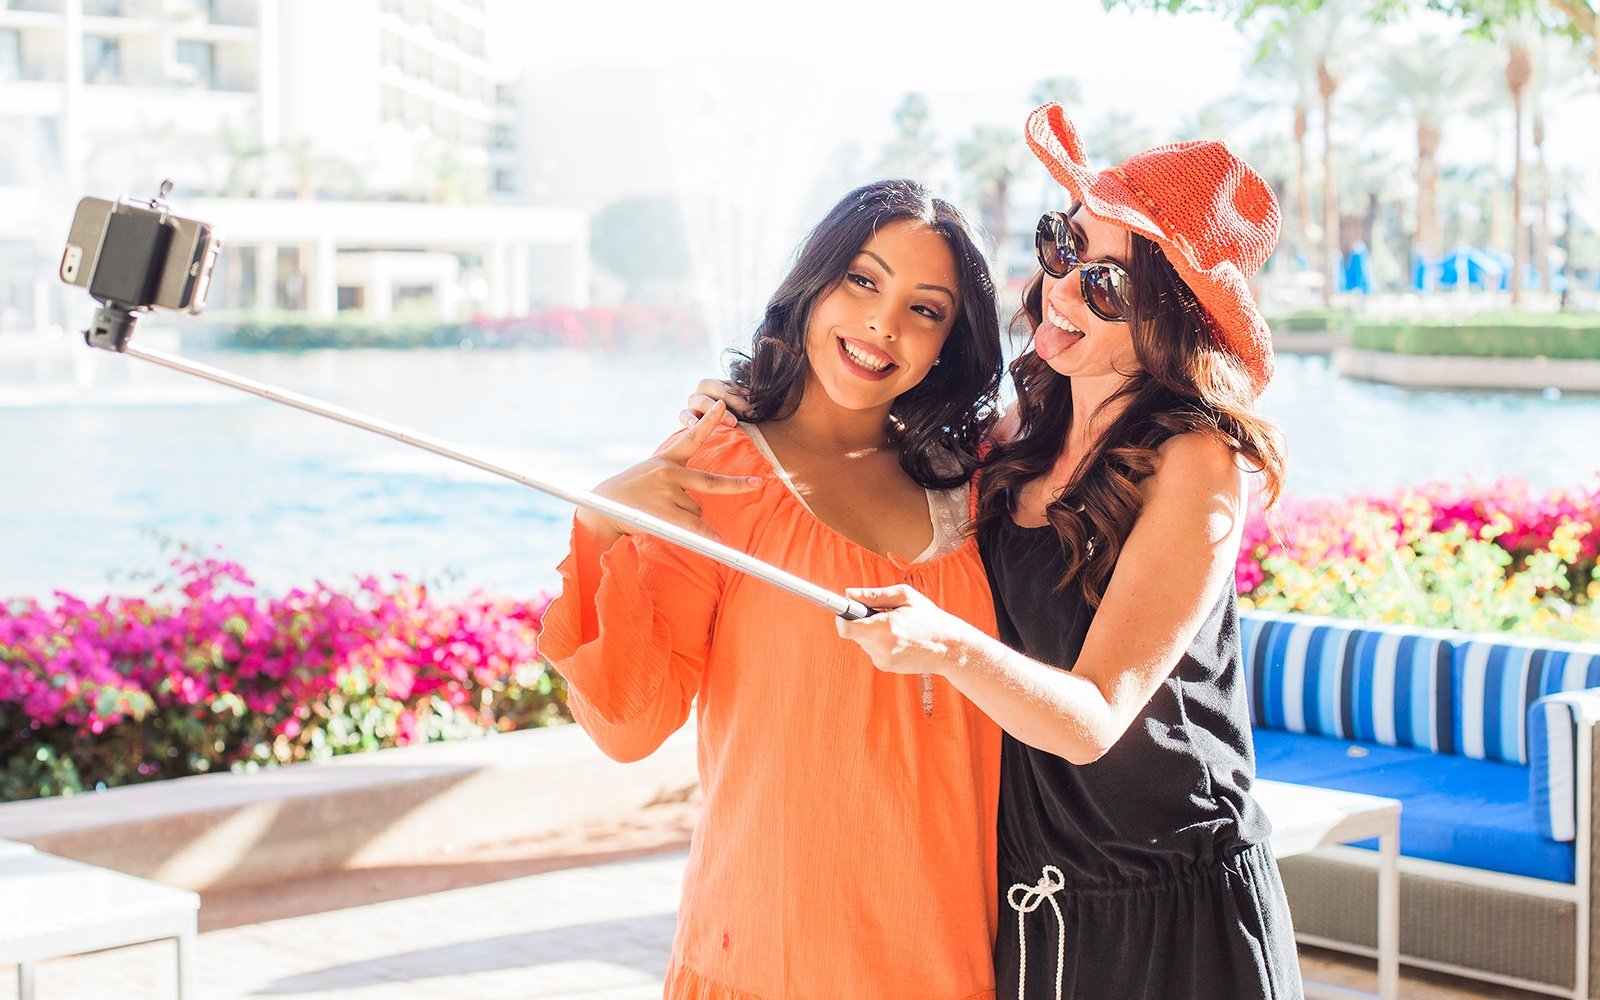 Selfie Sticks from Marriott